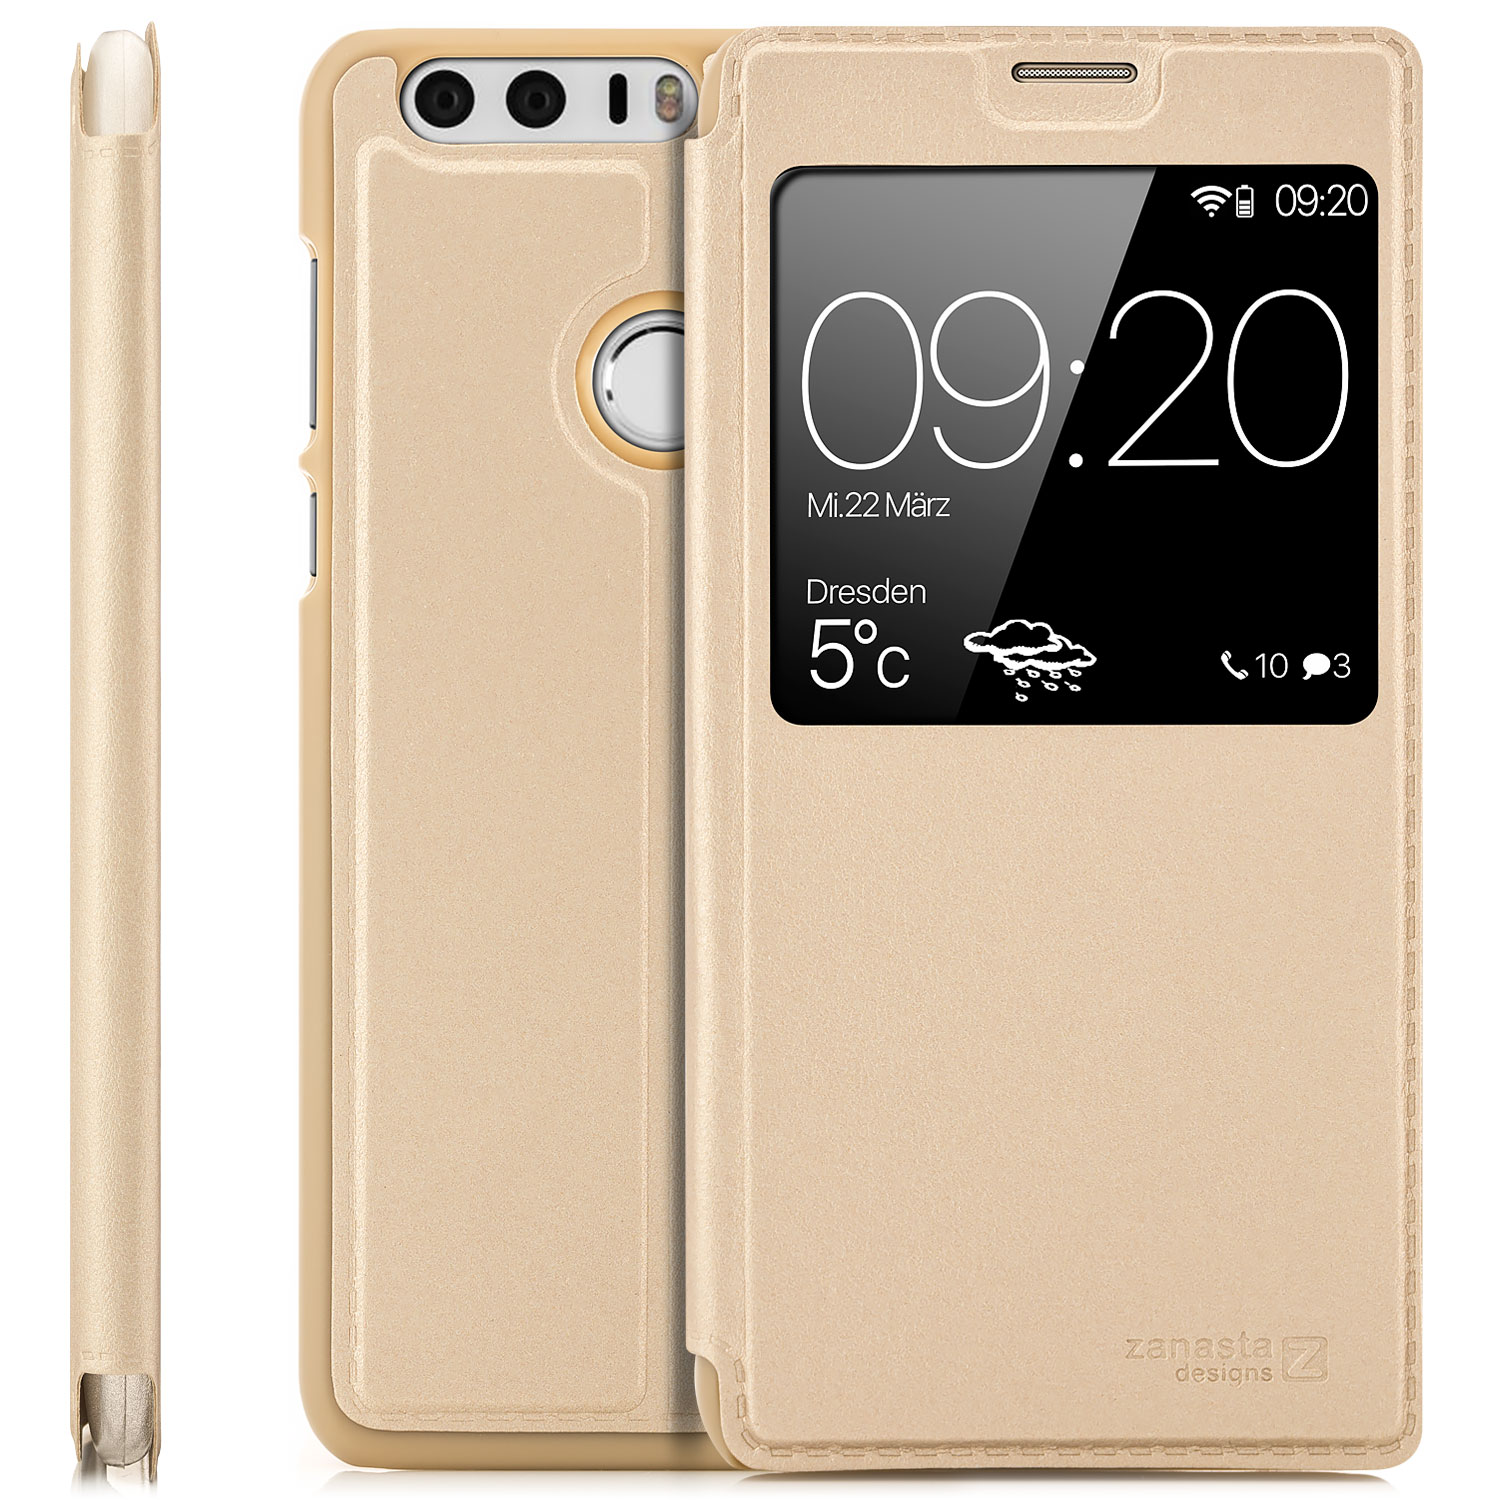 Zanasta Kunstleder View Case Für Huawei Honor 8 Gold